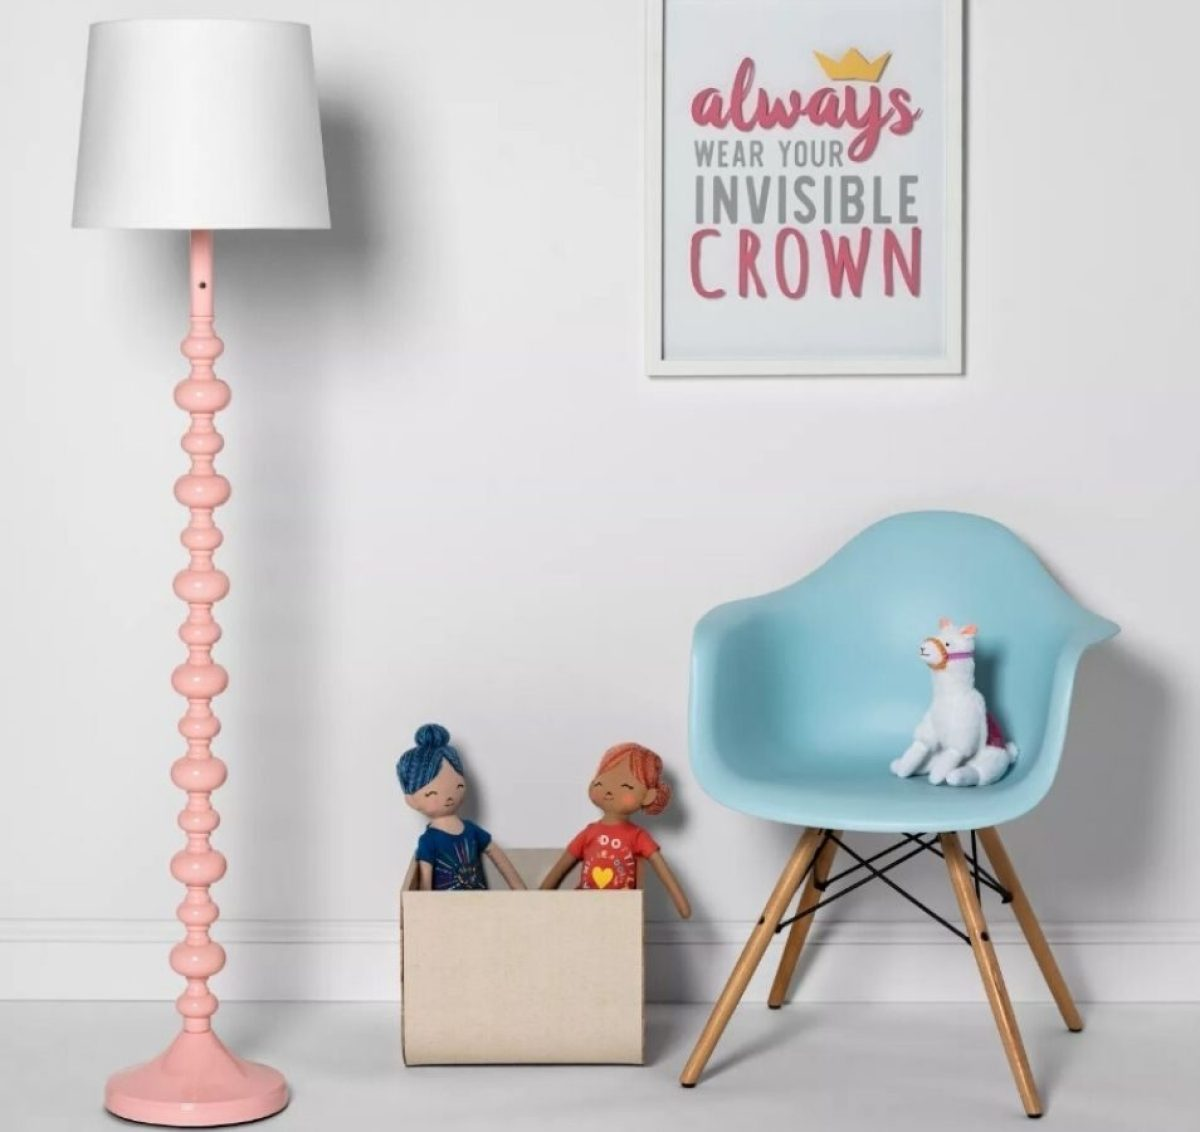 childrens room with lamp, box of toys, chair with stuffed animals, and picture on the wall